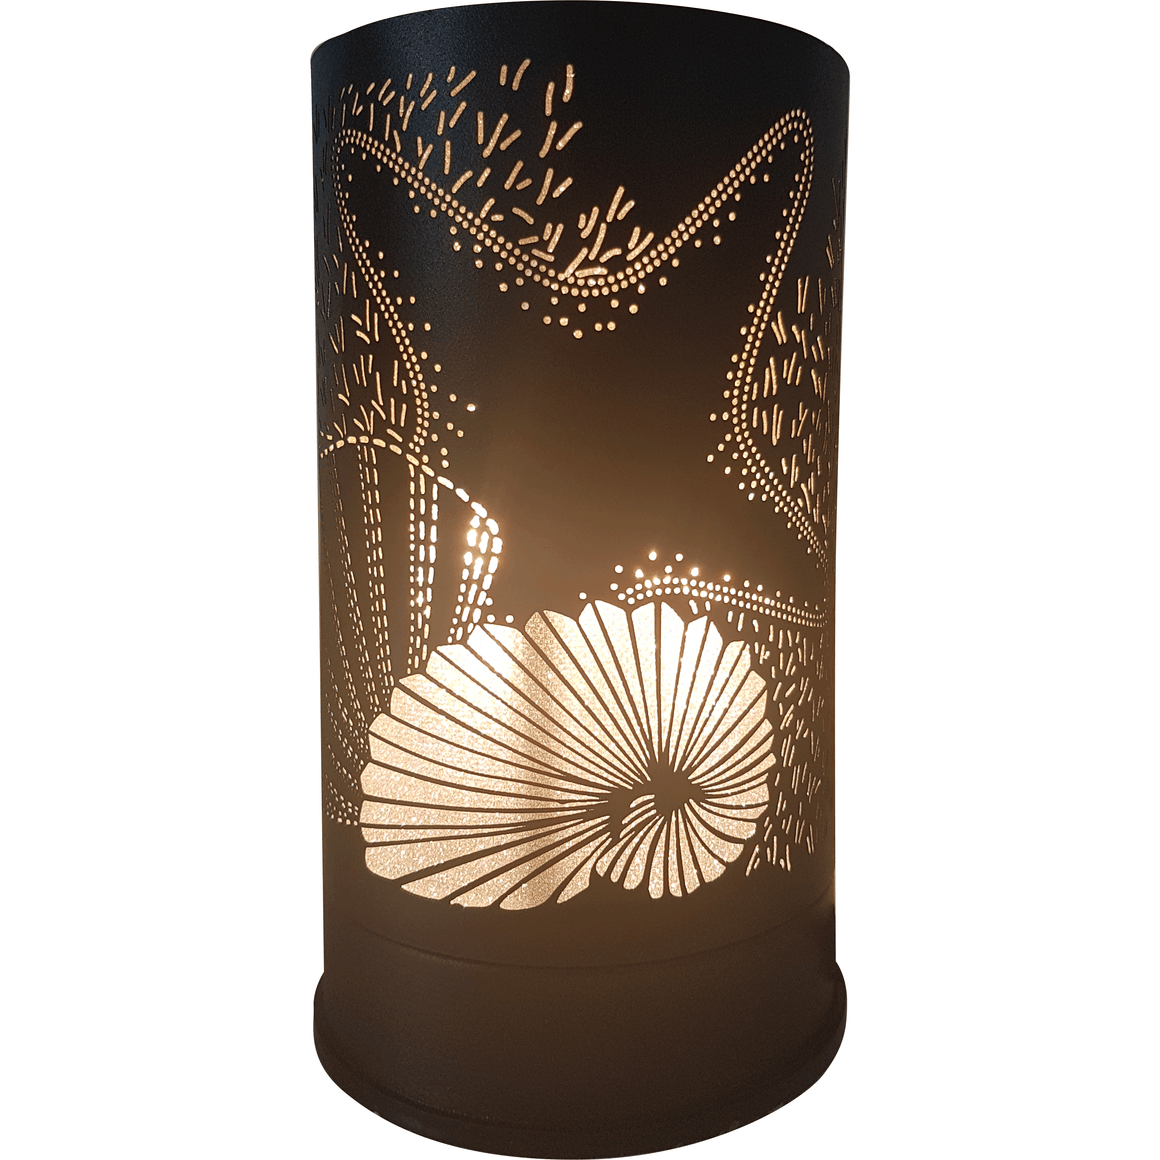 Beachcomber Black Touch Lamp